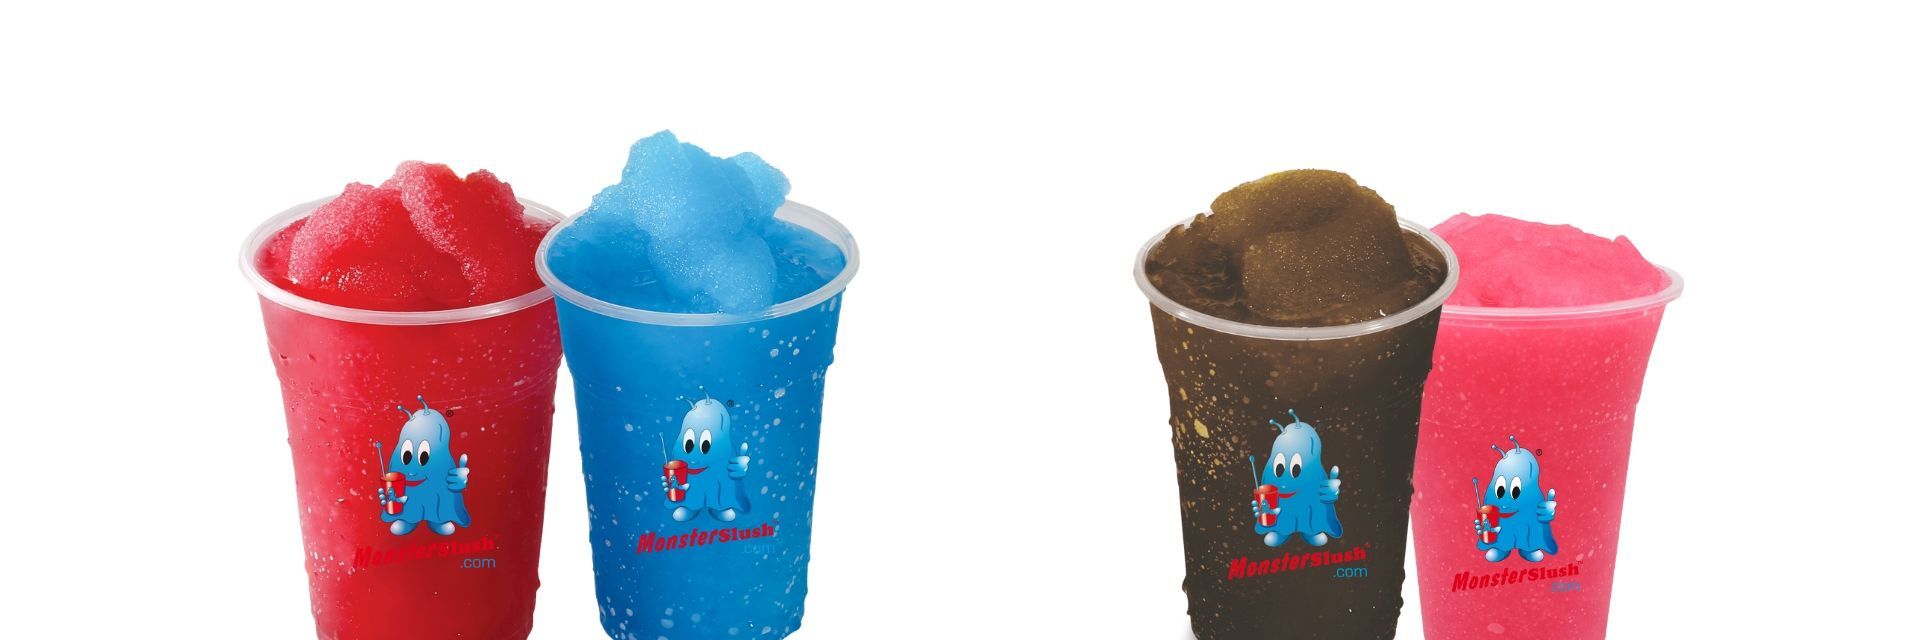 Zuckerfreies Slush